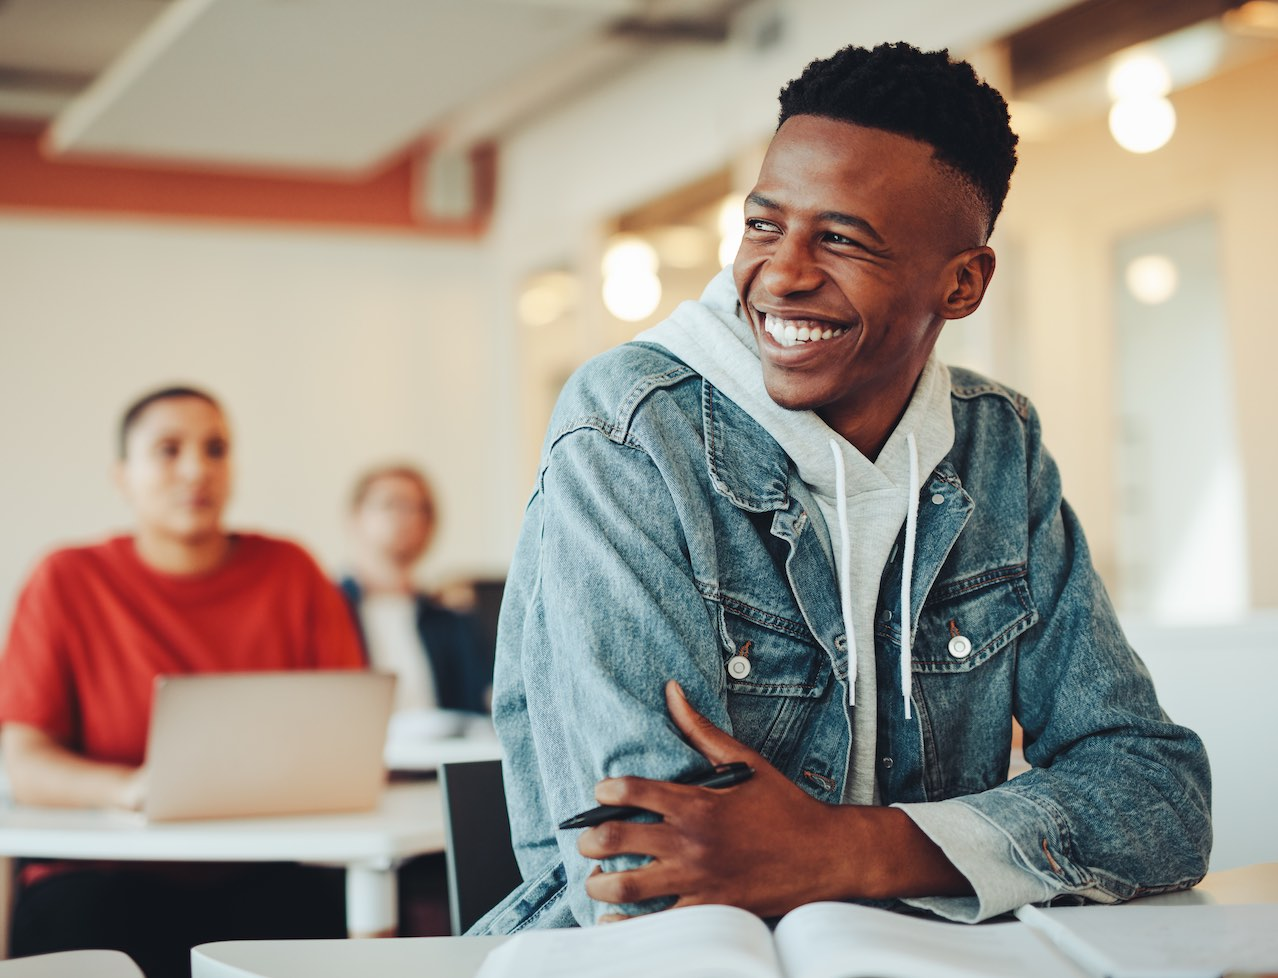 Image shows a picture of a smiling student in a classroom